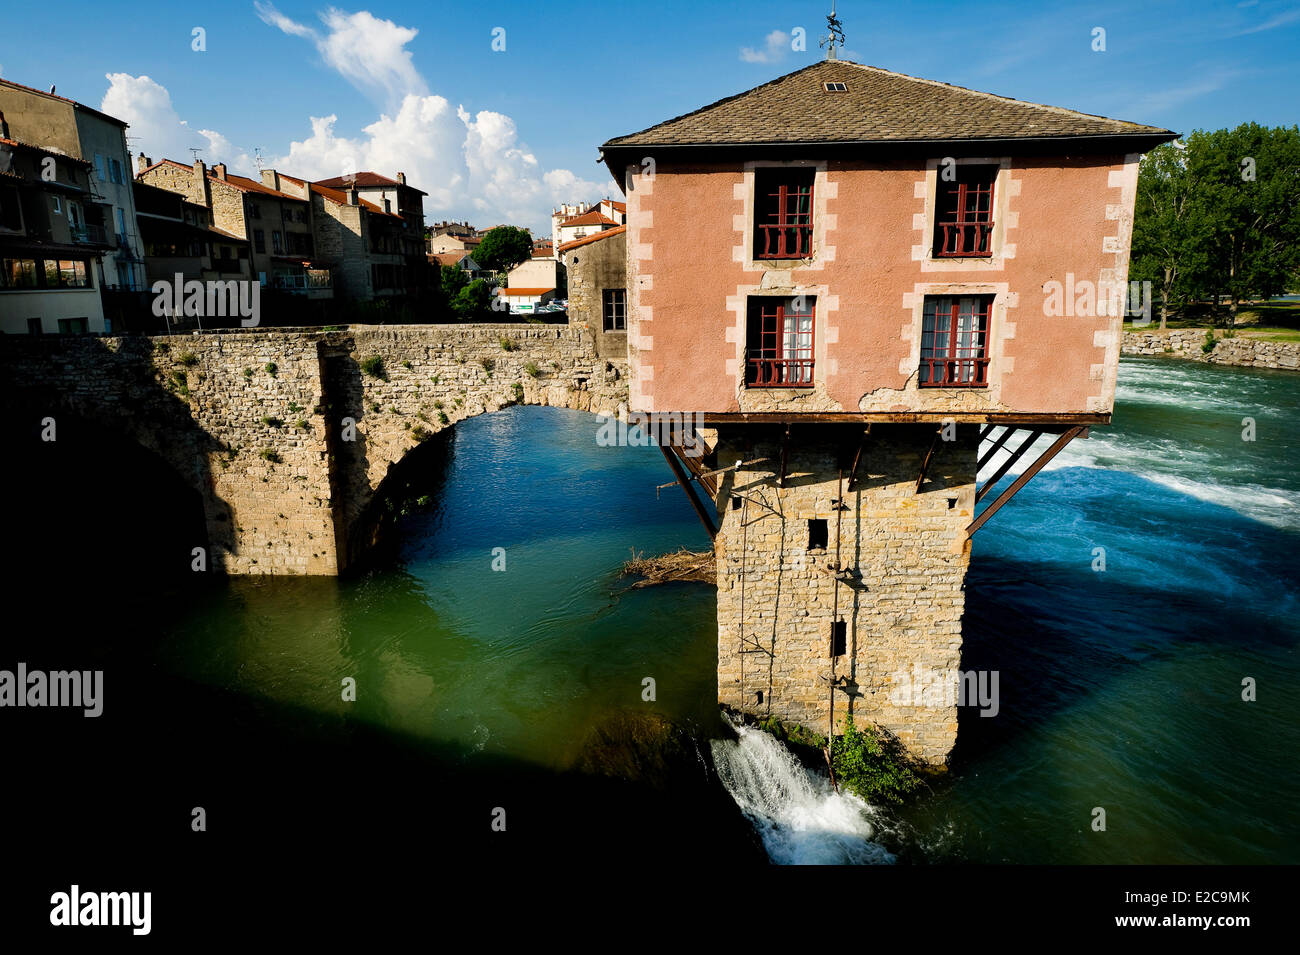 France, Aveyron, Natural Regional Park of Grands Causses, Millau, old mill on Pont Vieux - Stock Image